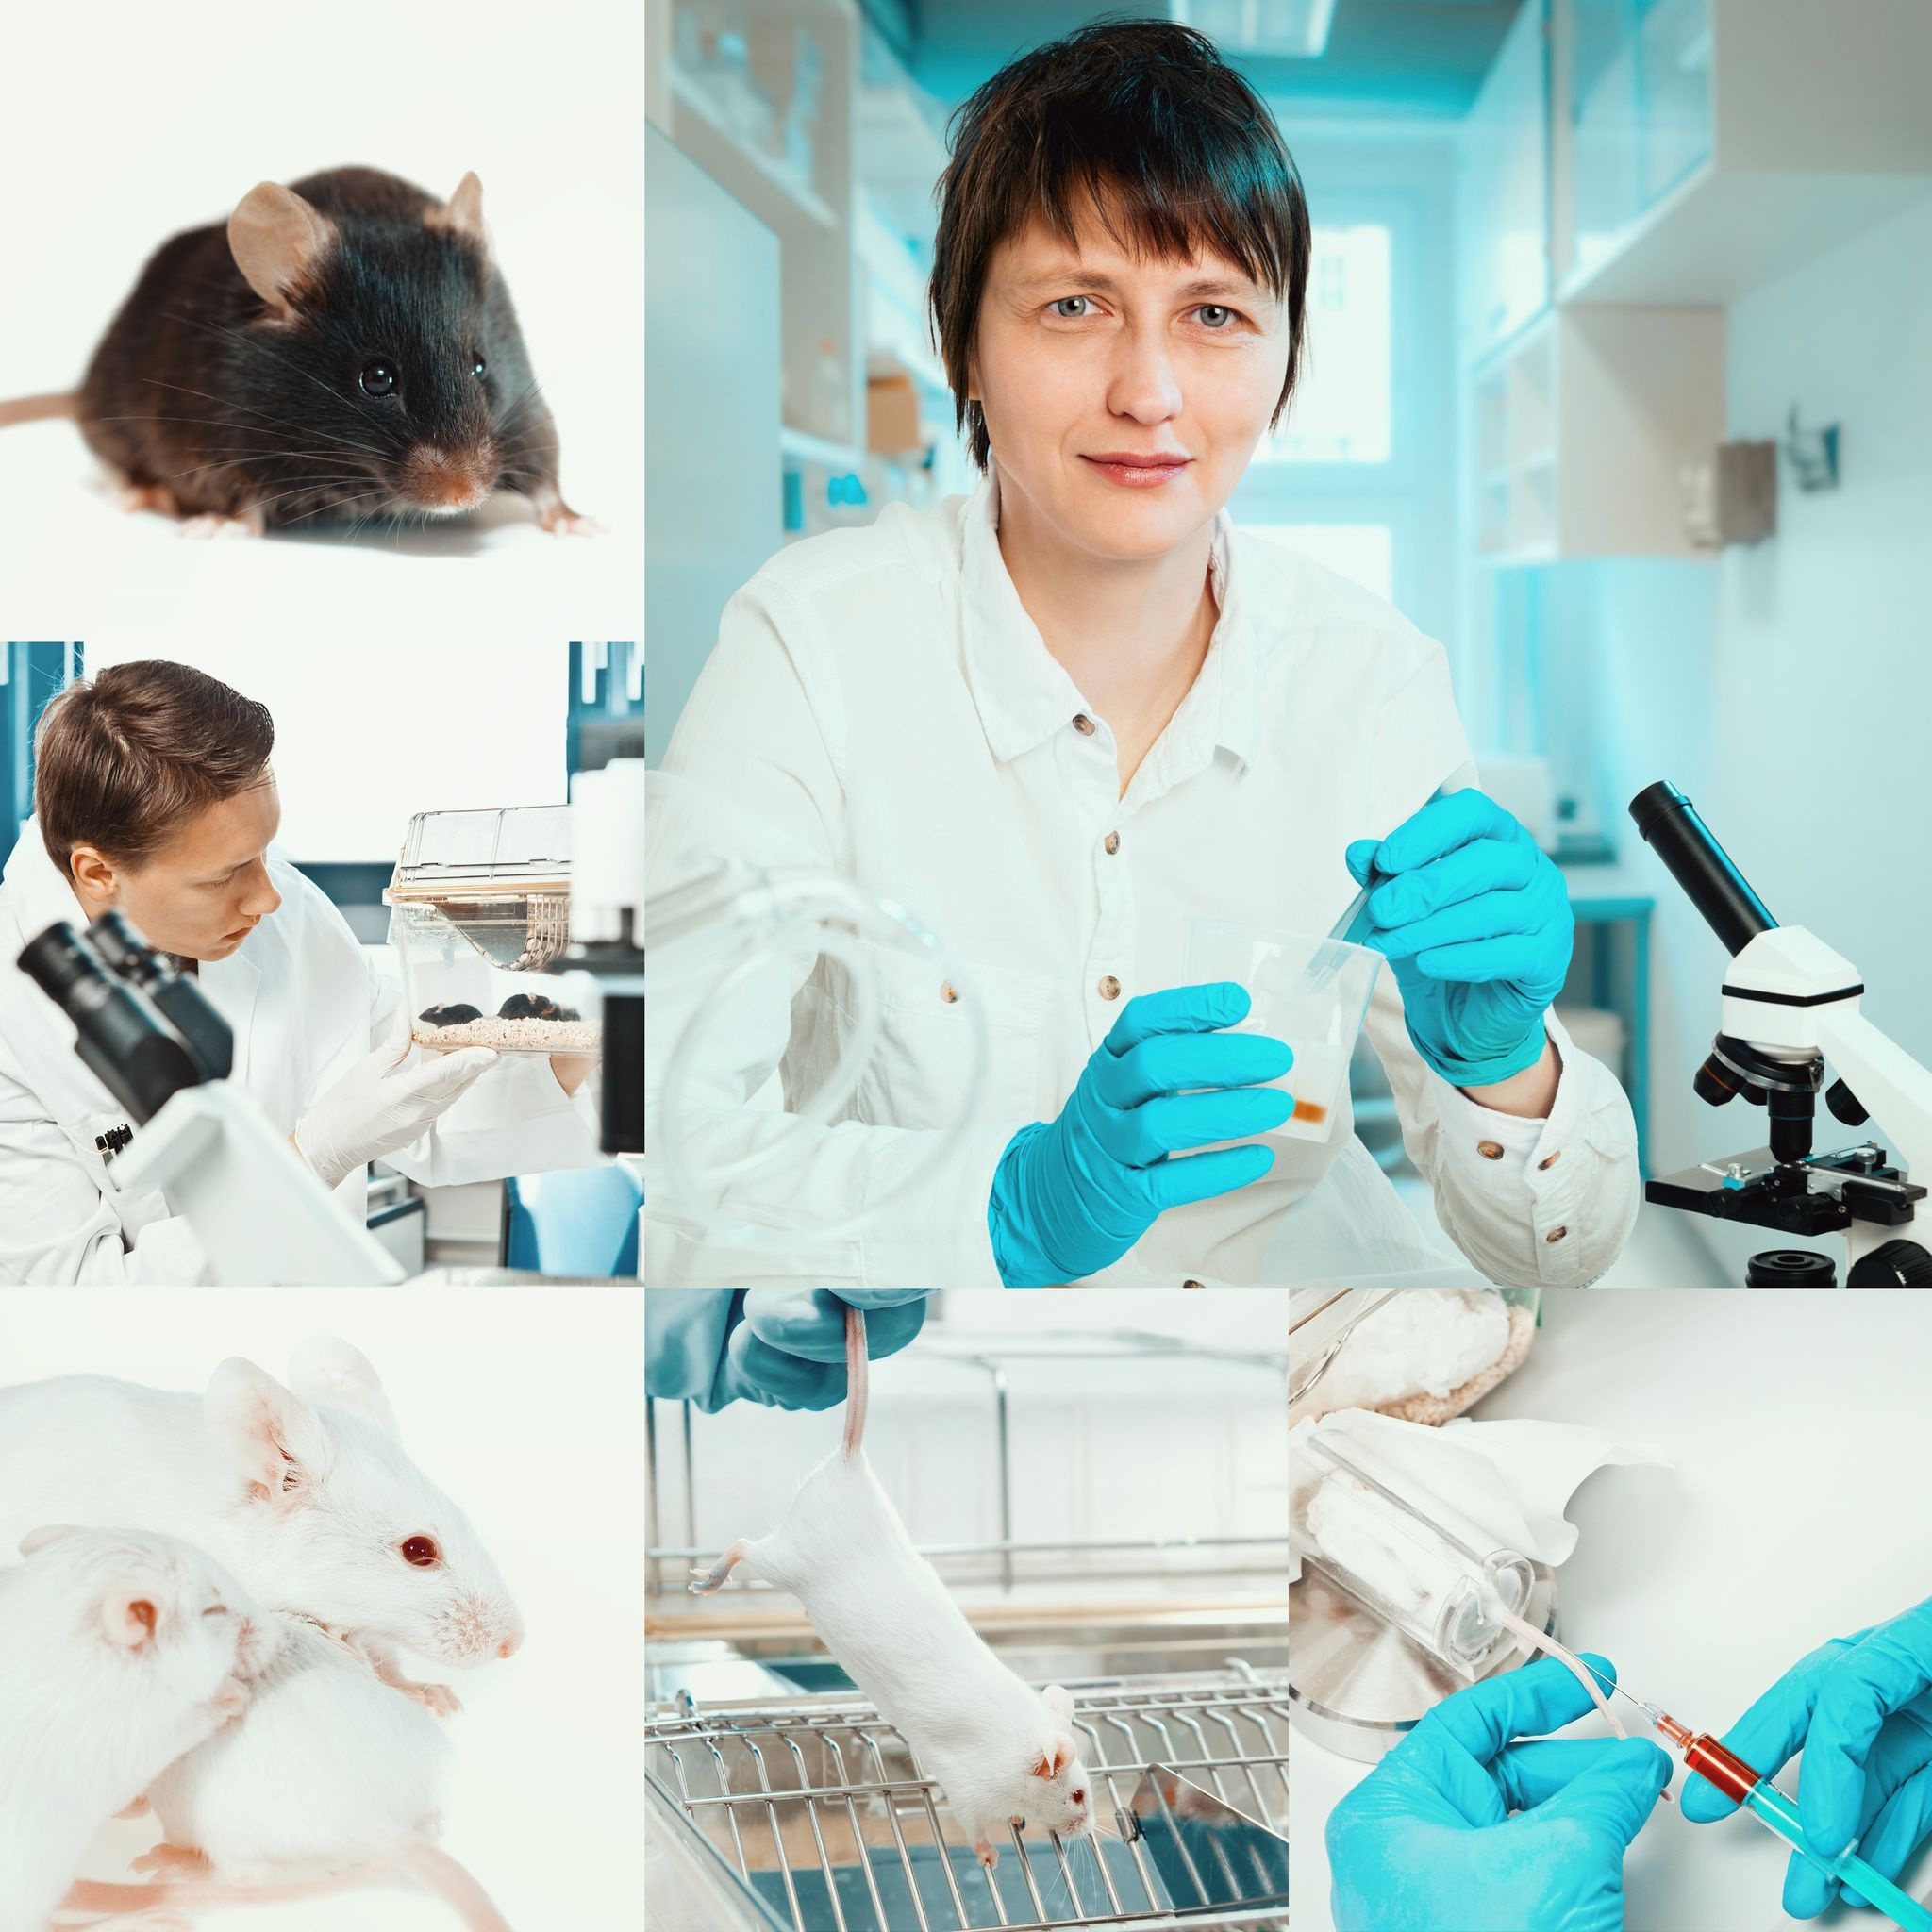 Rats in Science-how the pest who endangers us can also save our